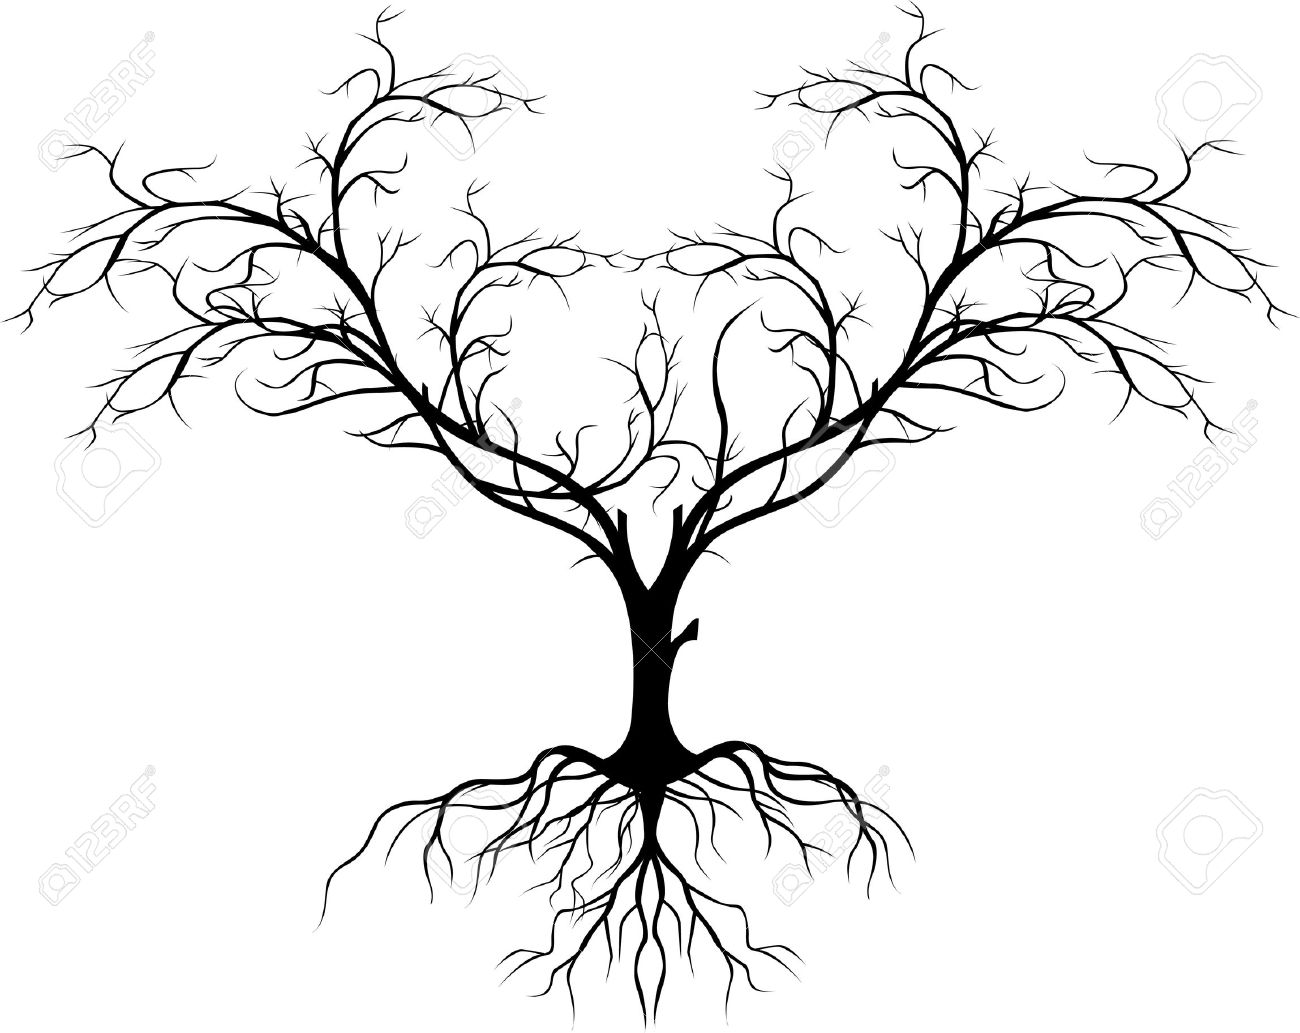 tree silhouette without leaf Stock Vector - 17840663